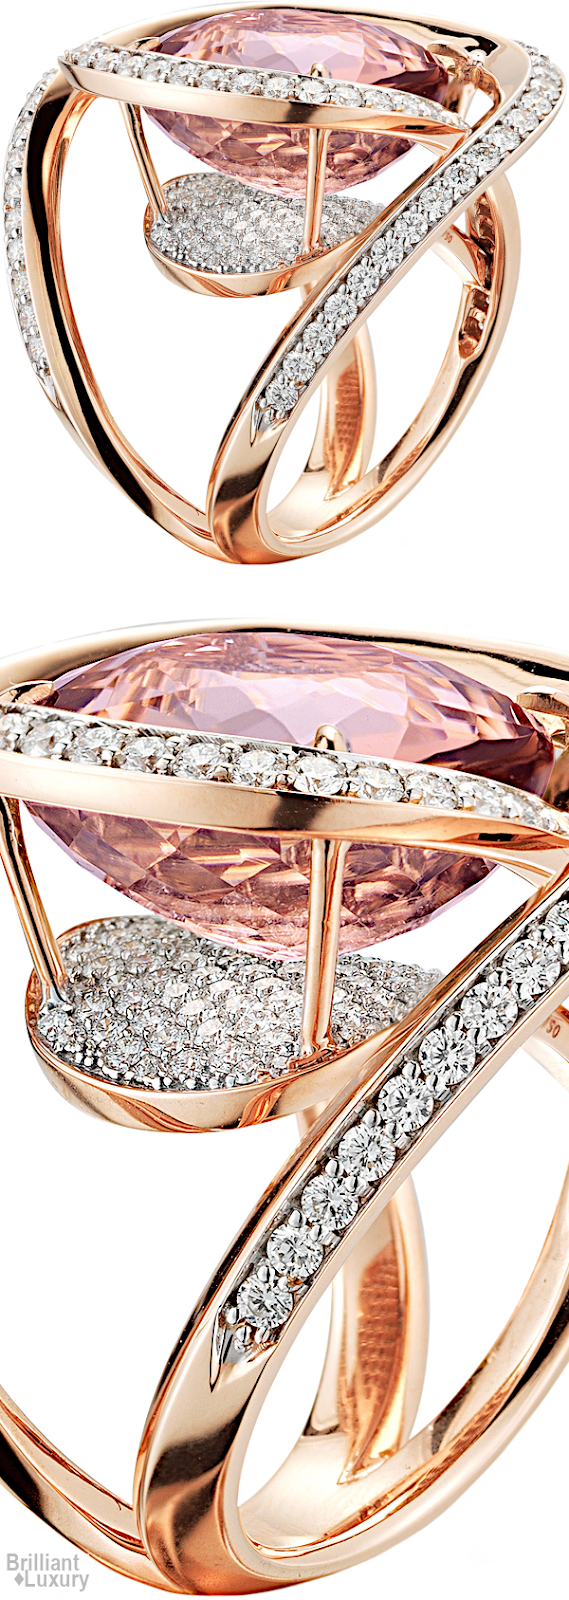 Brilliant Luxury♦Paolo Costagli Tourmaline Ring With Diamonds Set In 18ct Rose Gold